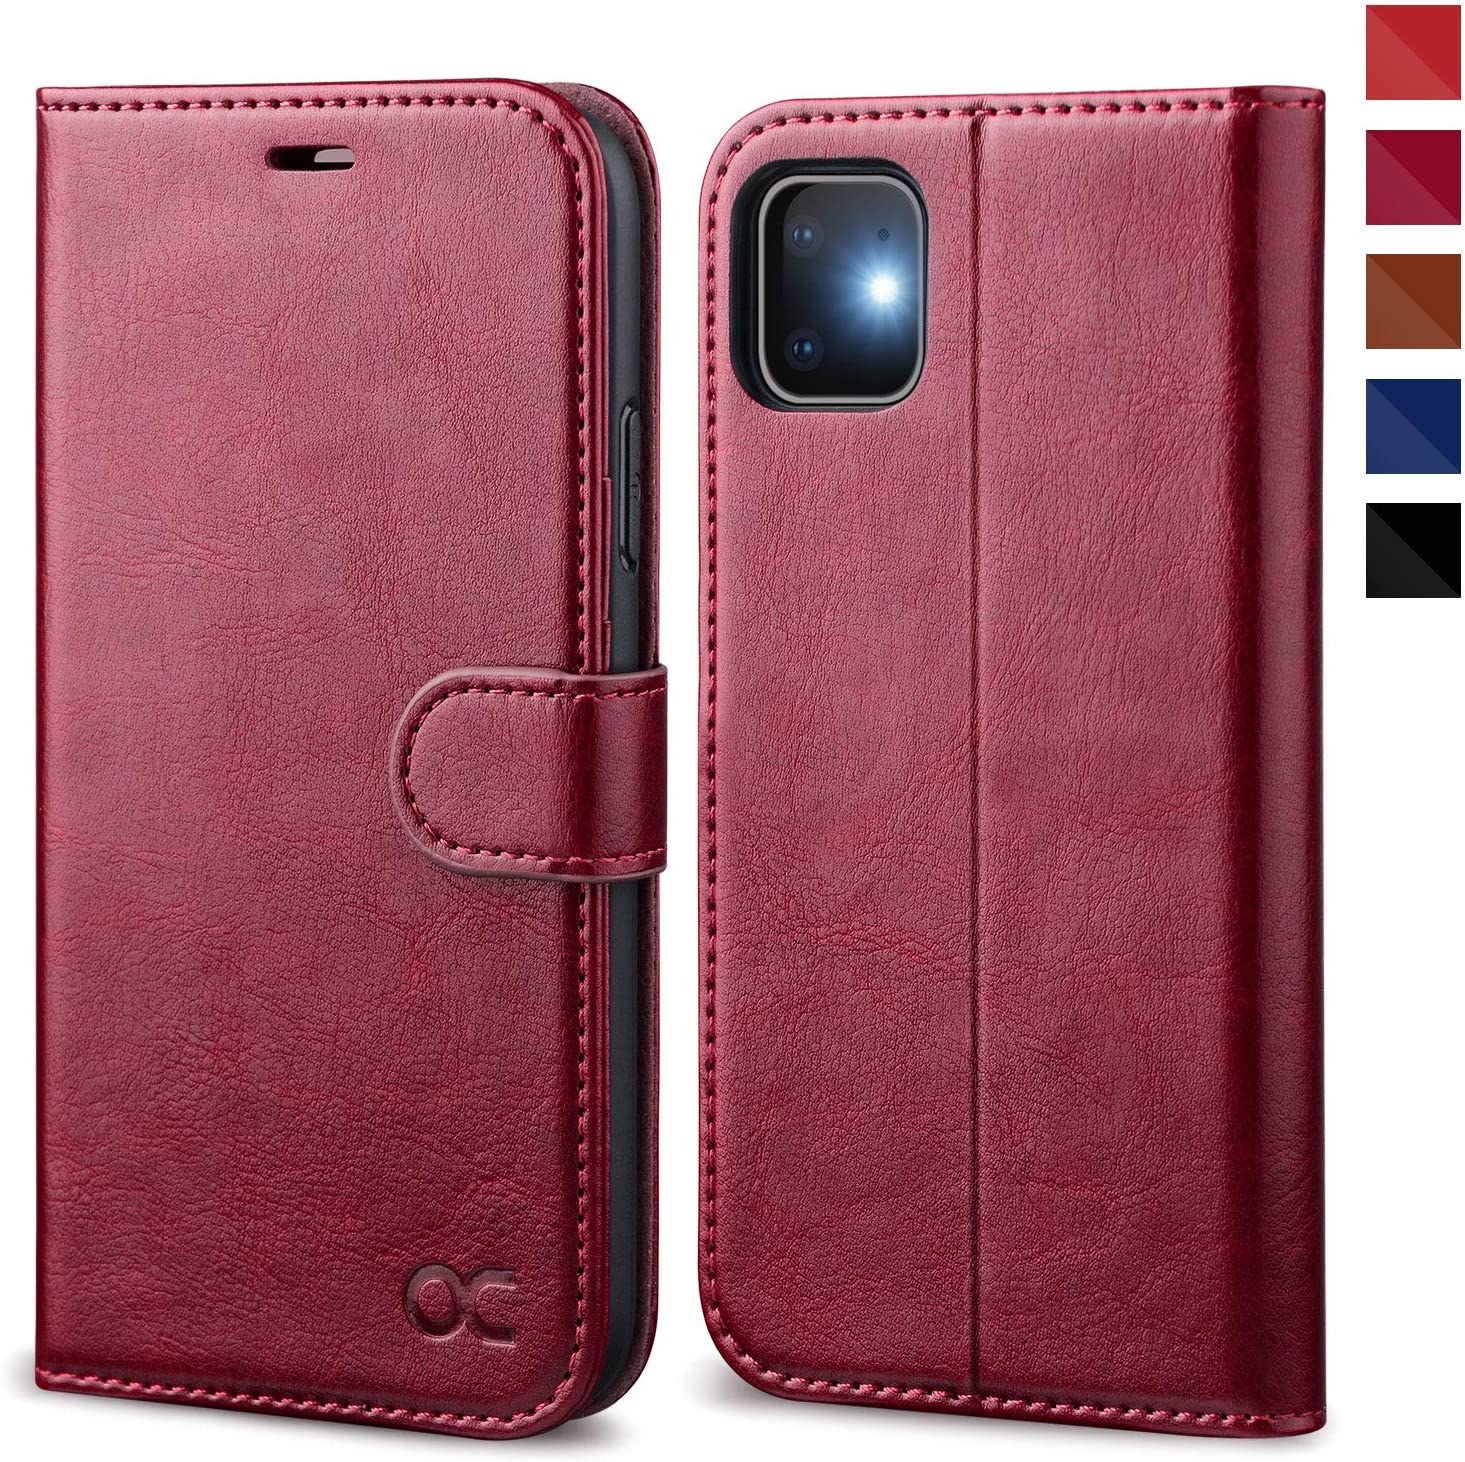 OCASE iPhone 11 Case, iPhone 11 Wallet Case with Card Holder, PU Leather Flip Case with Kickstand and Magnetic Closure, TPU Shockproof Interior Protective Cover for iPhone 11 6.1 Inch (Burgundy)